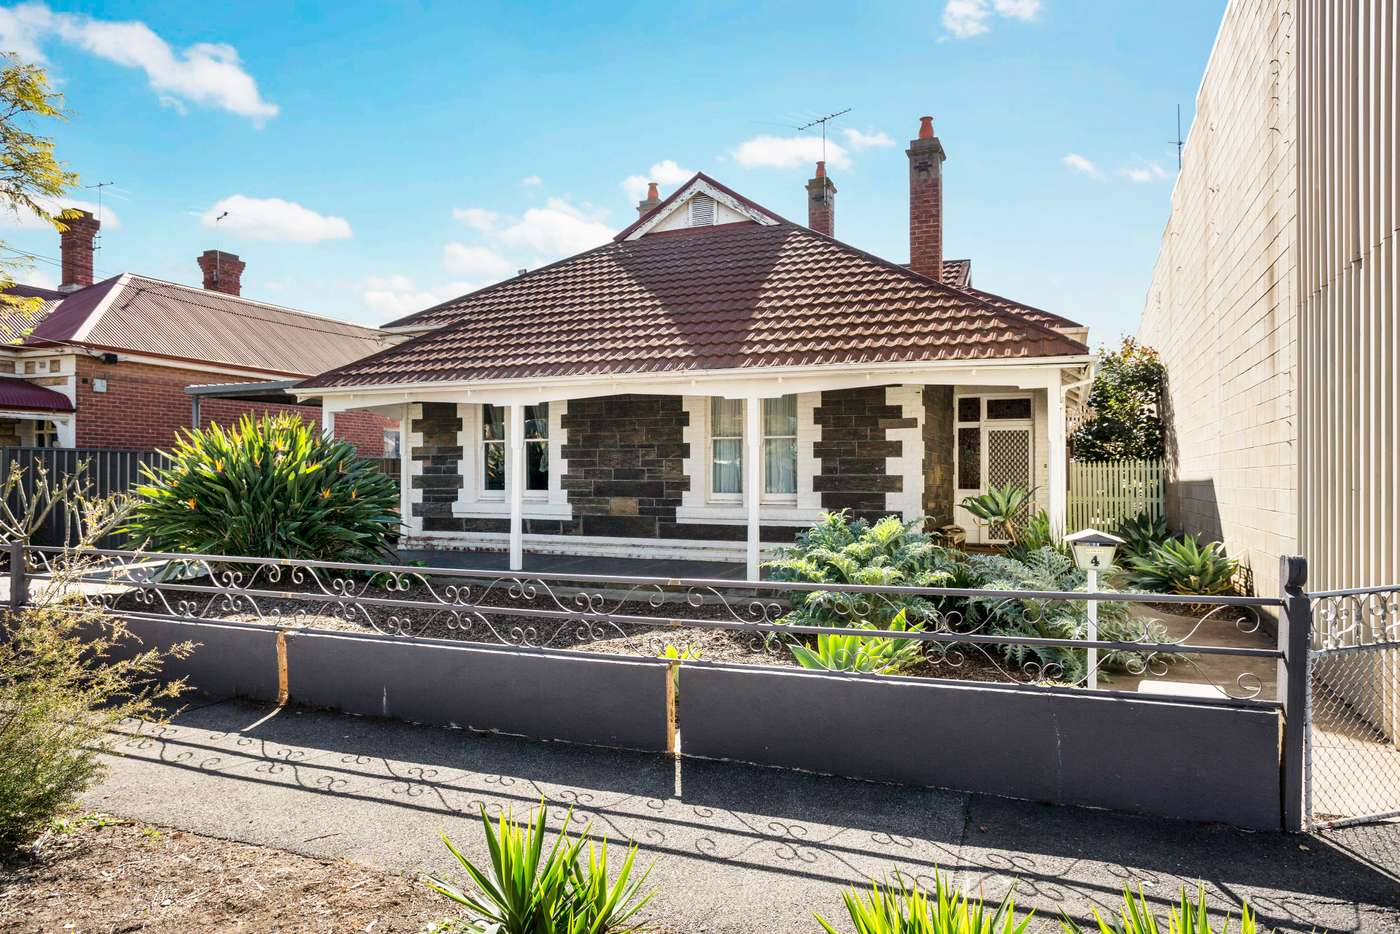 Main view of Homely house listing, 4 Gething Crescent, Bowden SA 5007